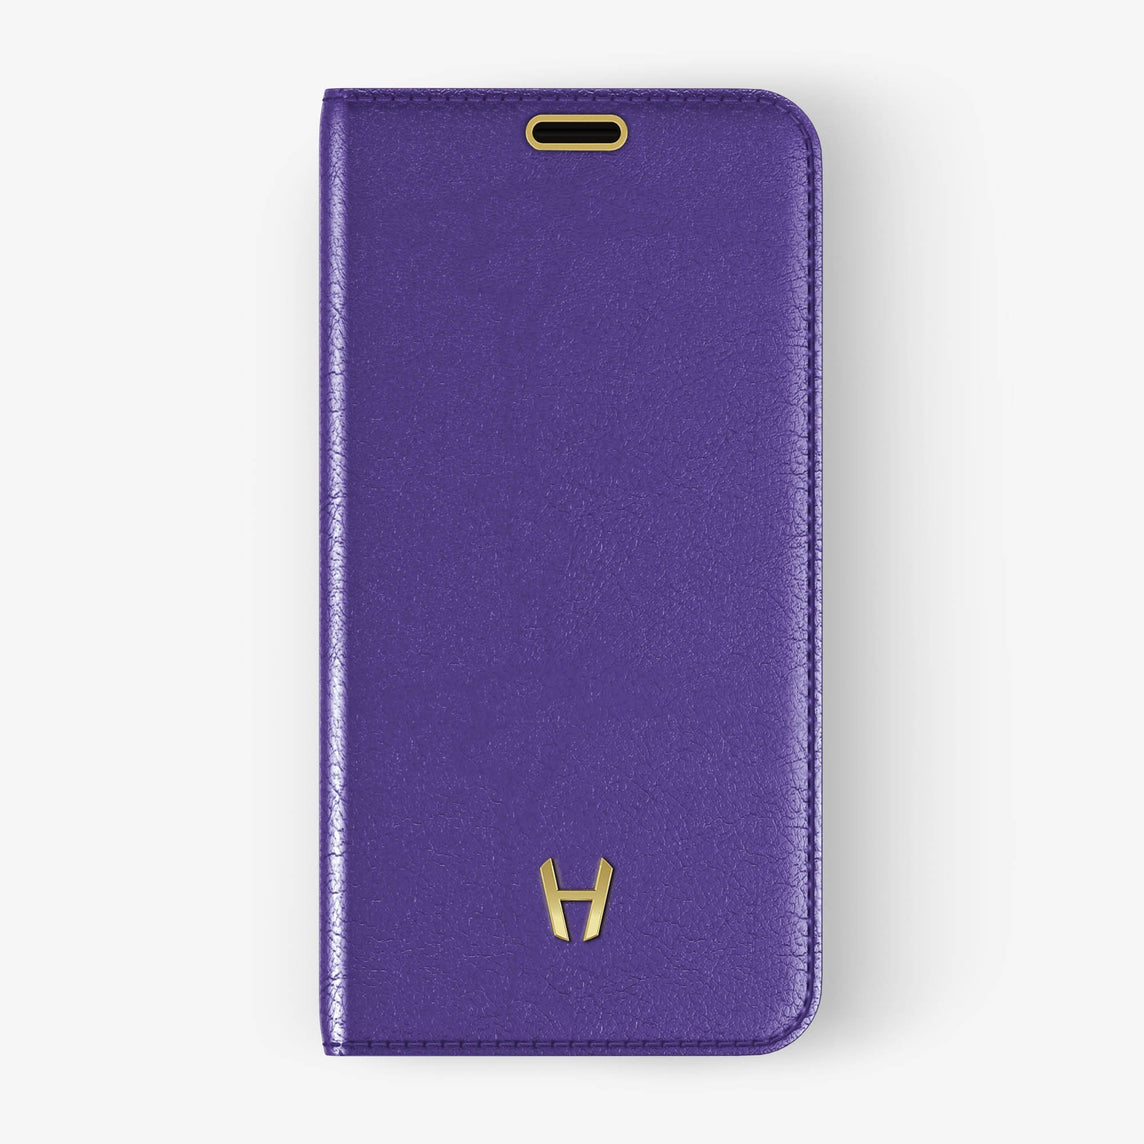 Violet Calfskin iPhone Folio Case for iPhone X finishing yellow gold - Hadoro Luxury Cases - img2